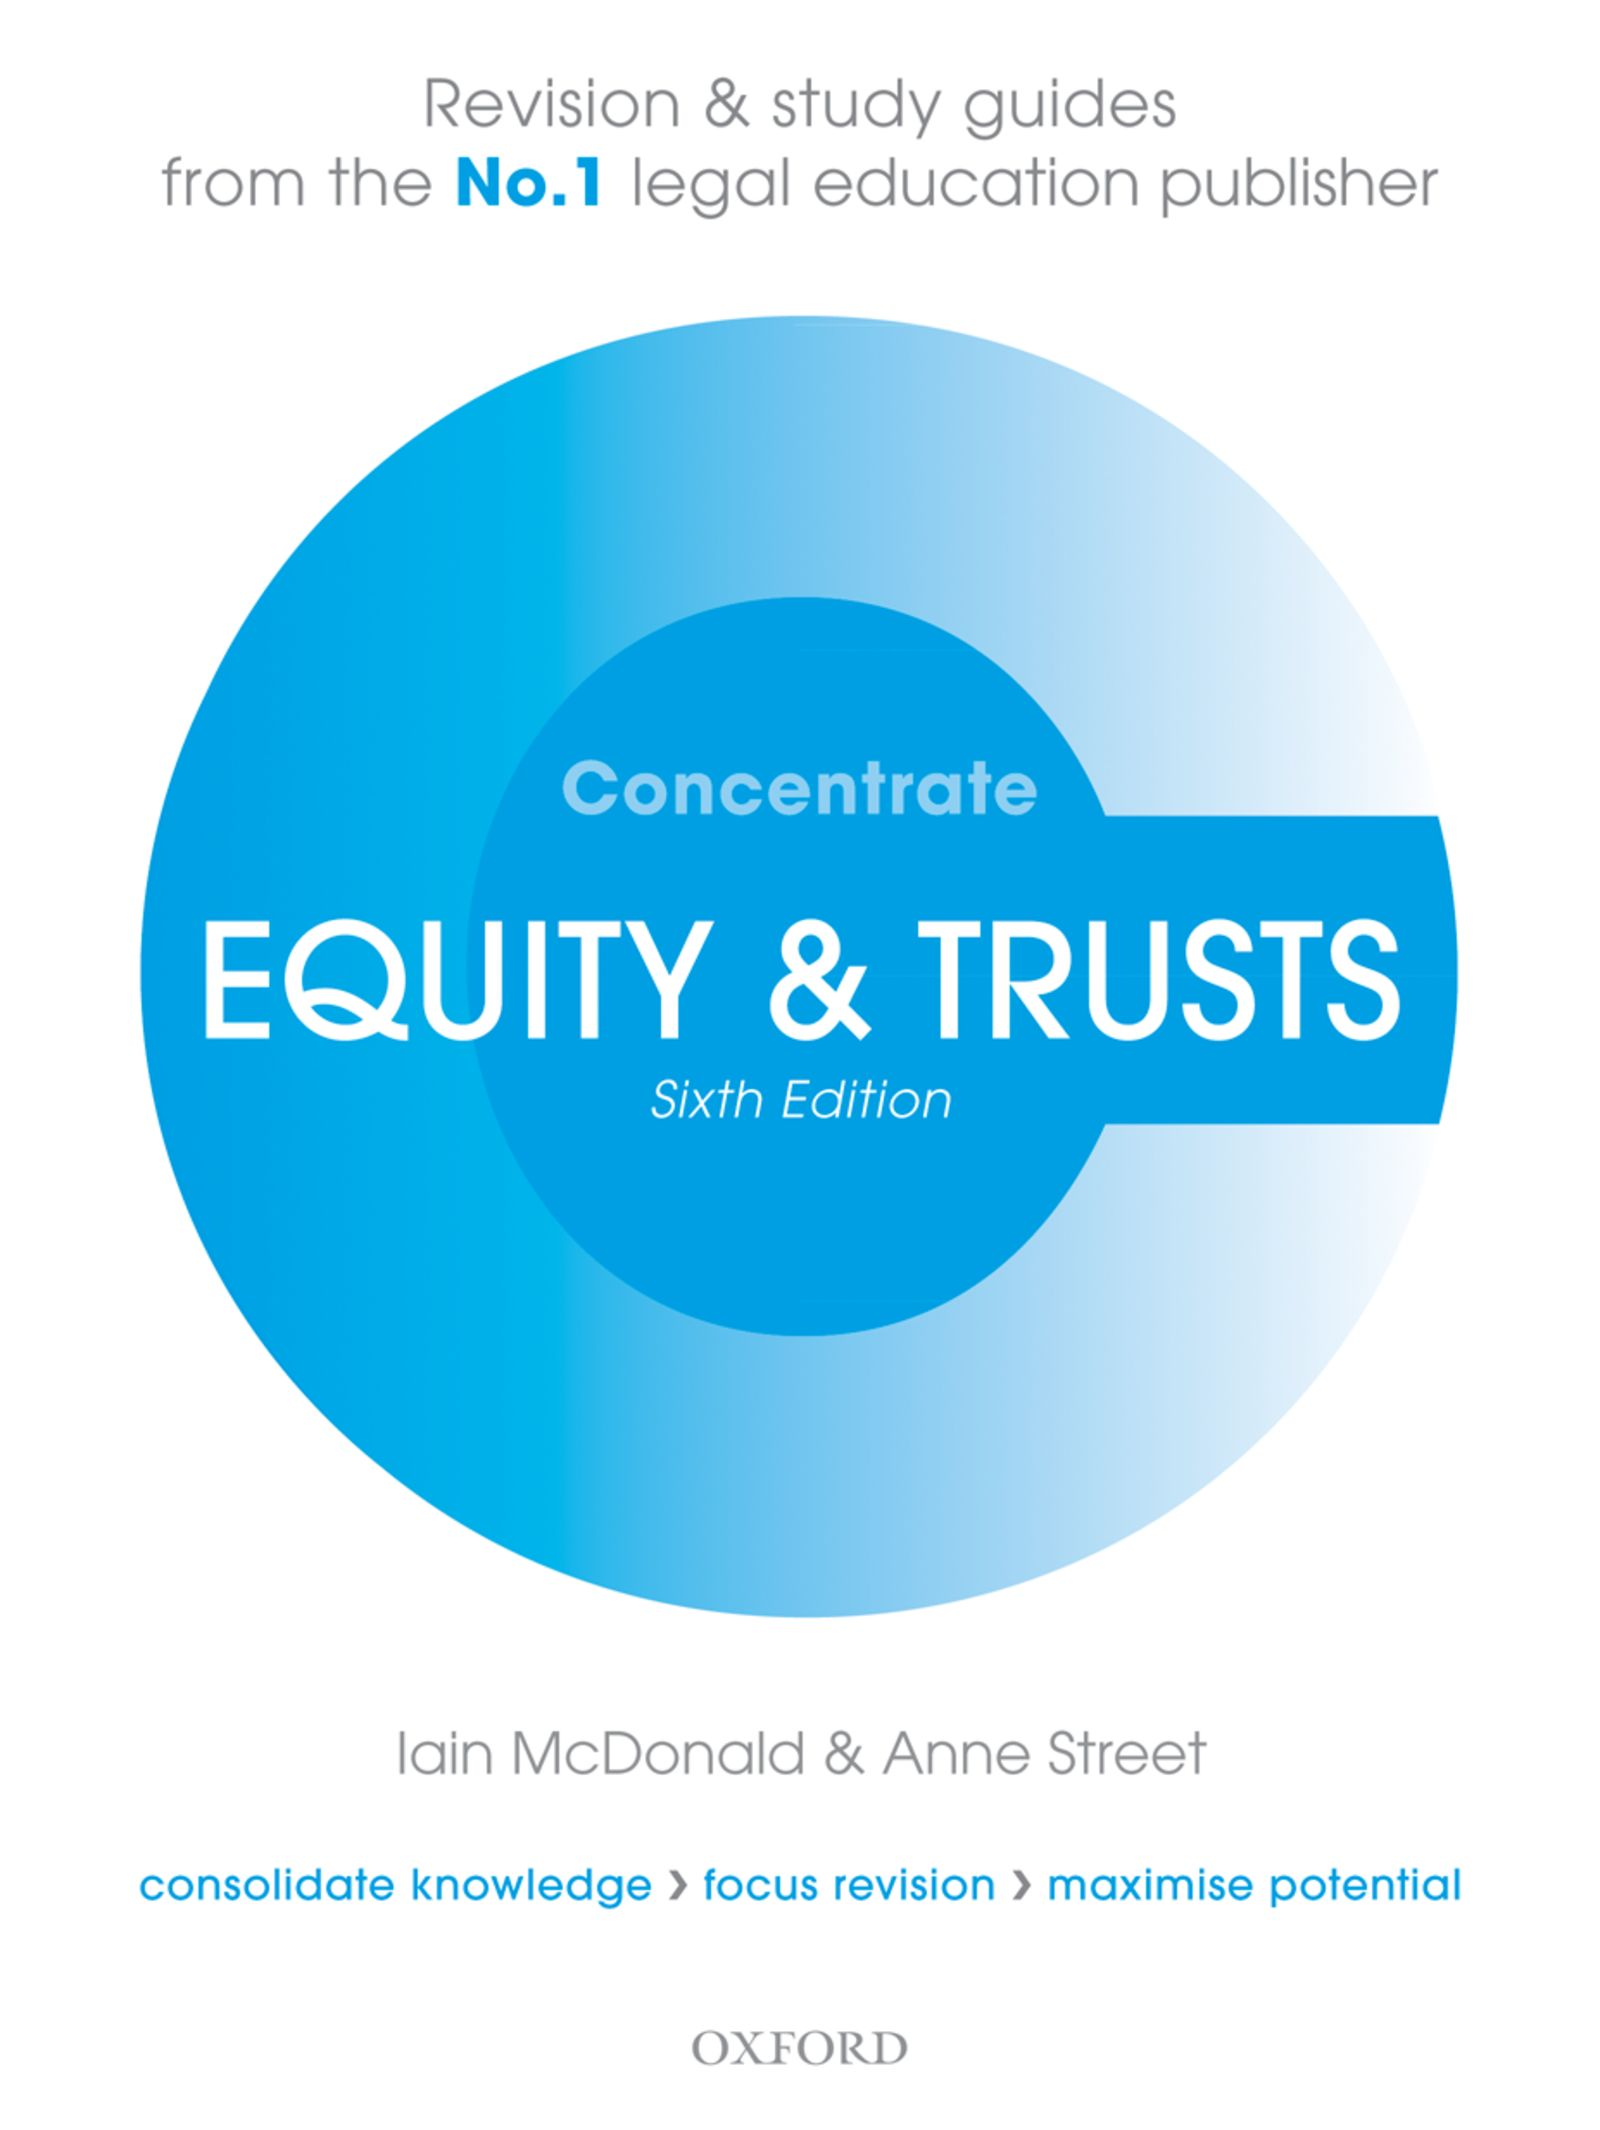 Equity & Trusts Concentrate 6e